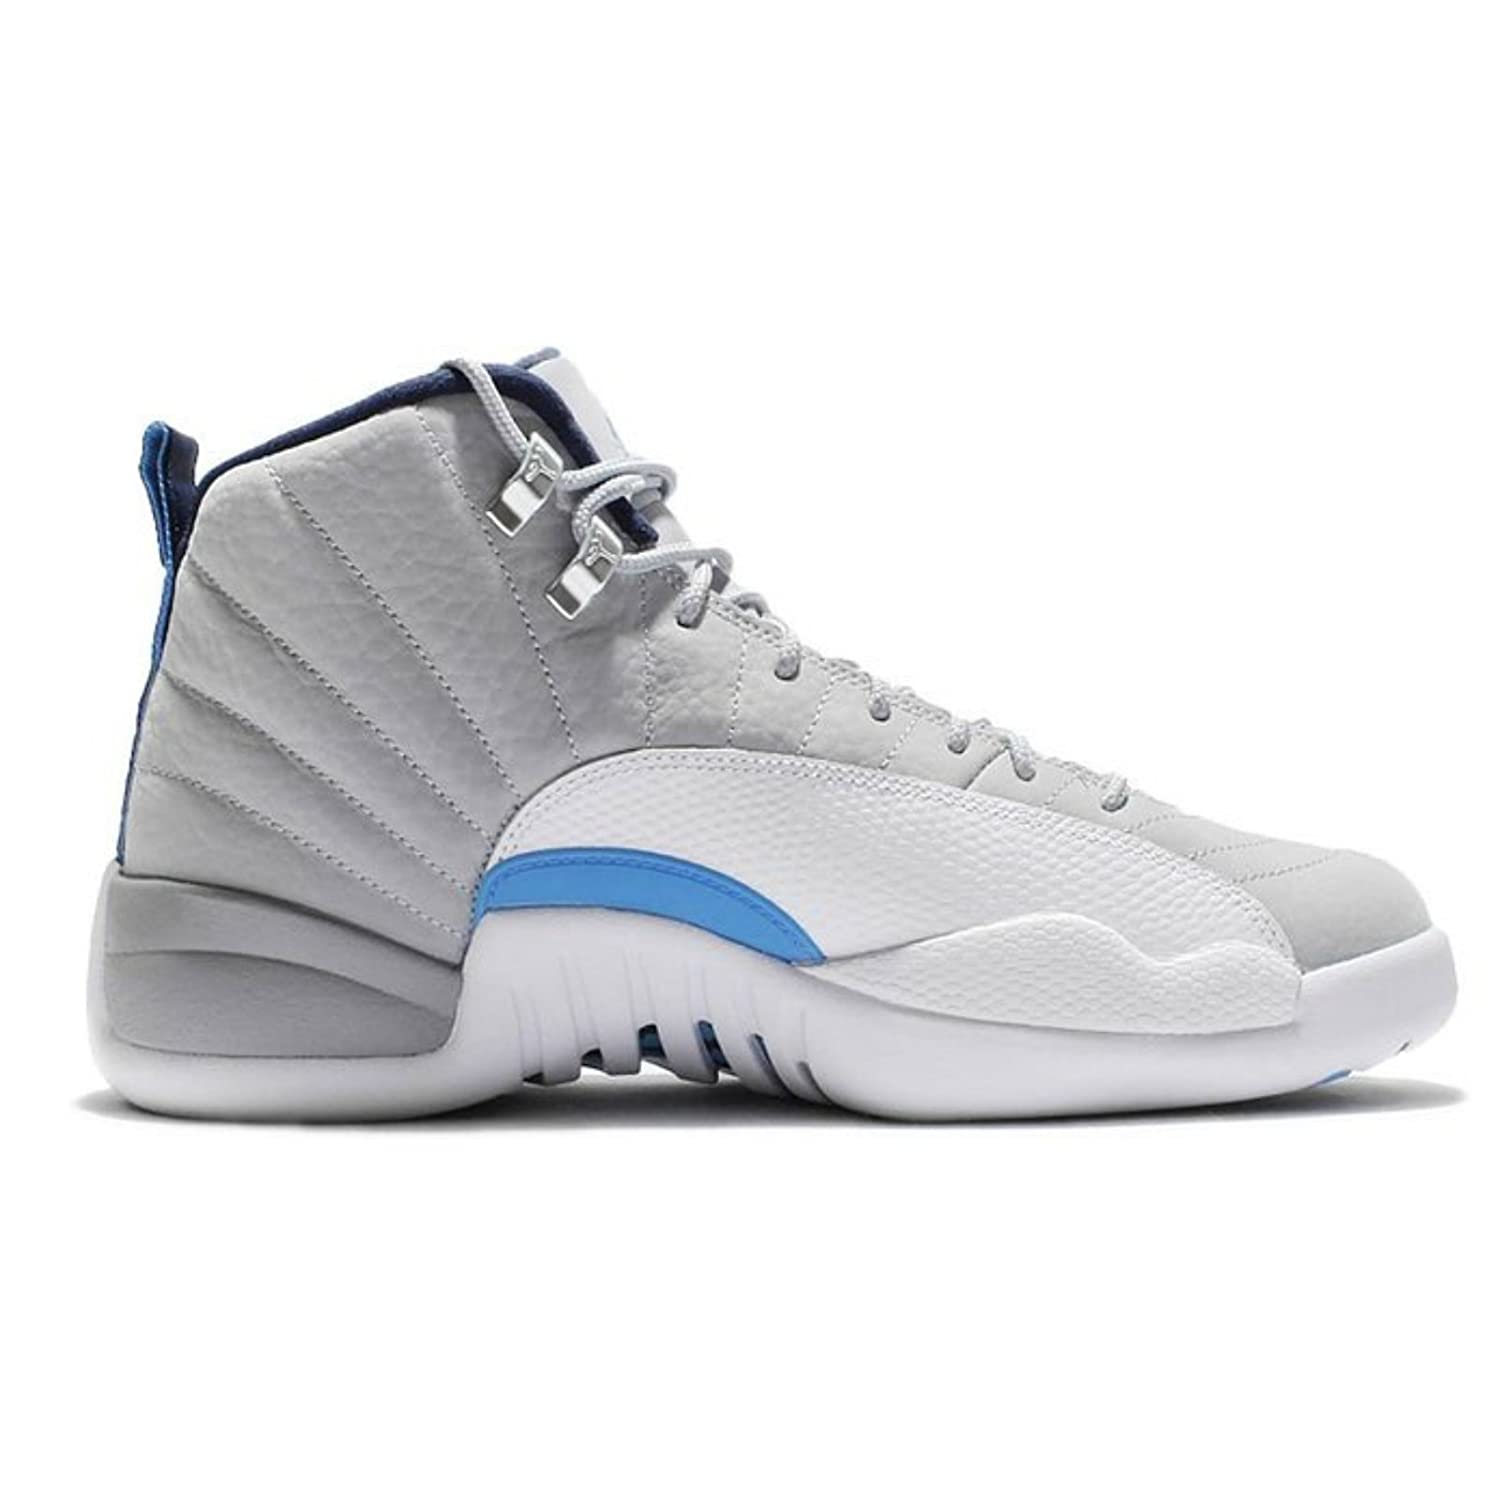 finest selection c0357 a7da3 Amazon.com   Jordan Air 12 Retro Wolf Grey UNC University Blue Men s Shoe  Size   Basketball